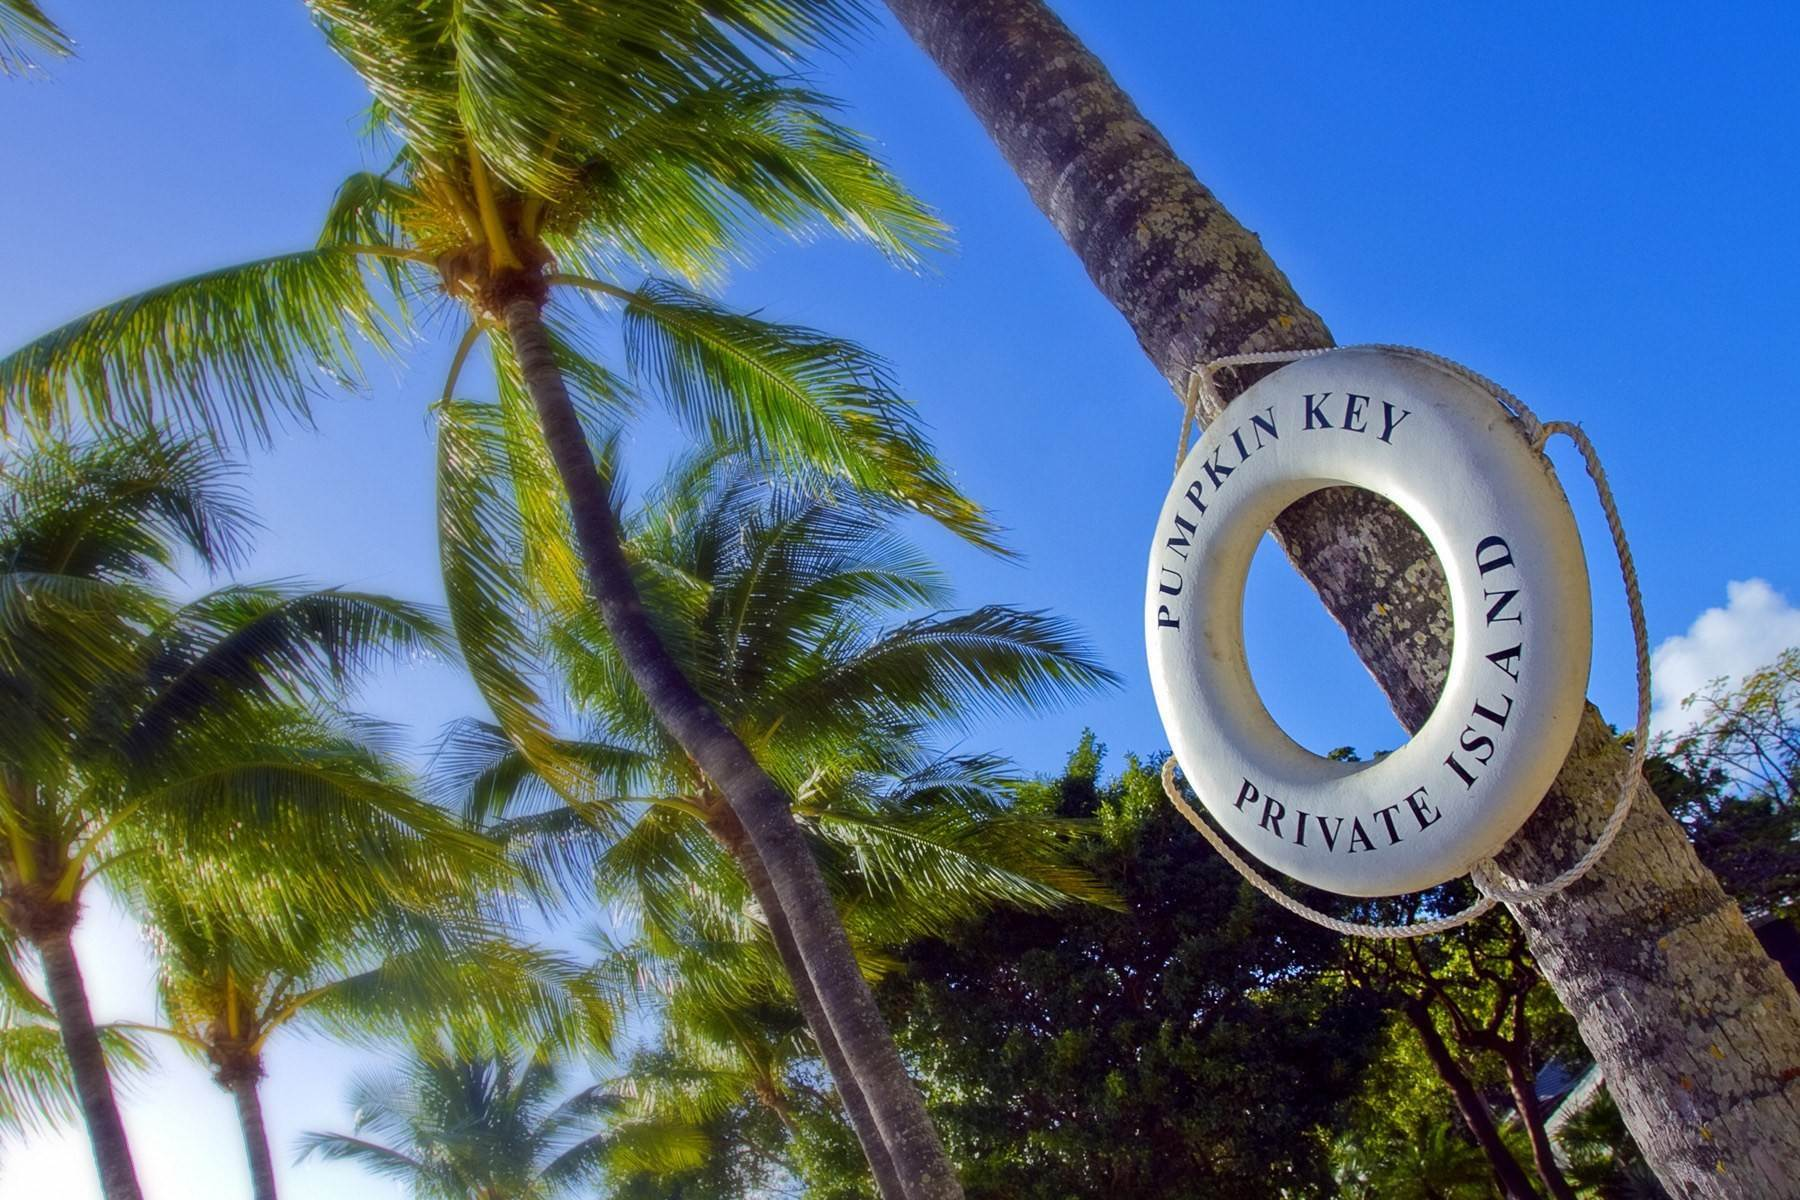 13. Property for Sale at Pumpkin Key - Private Island, Key Largo, FL Pumpkin Key - Private Island Key Largo, Florida 33037 United States